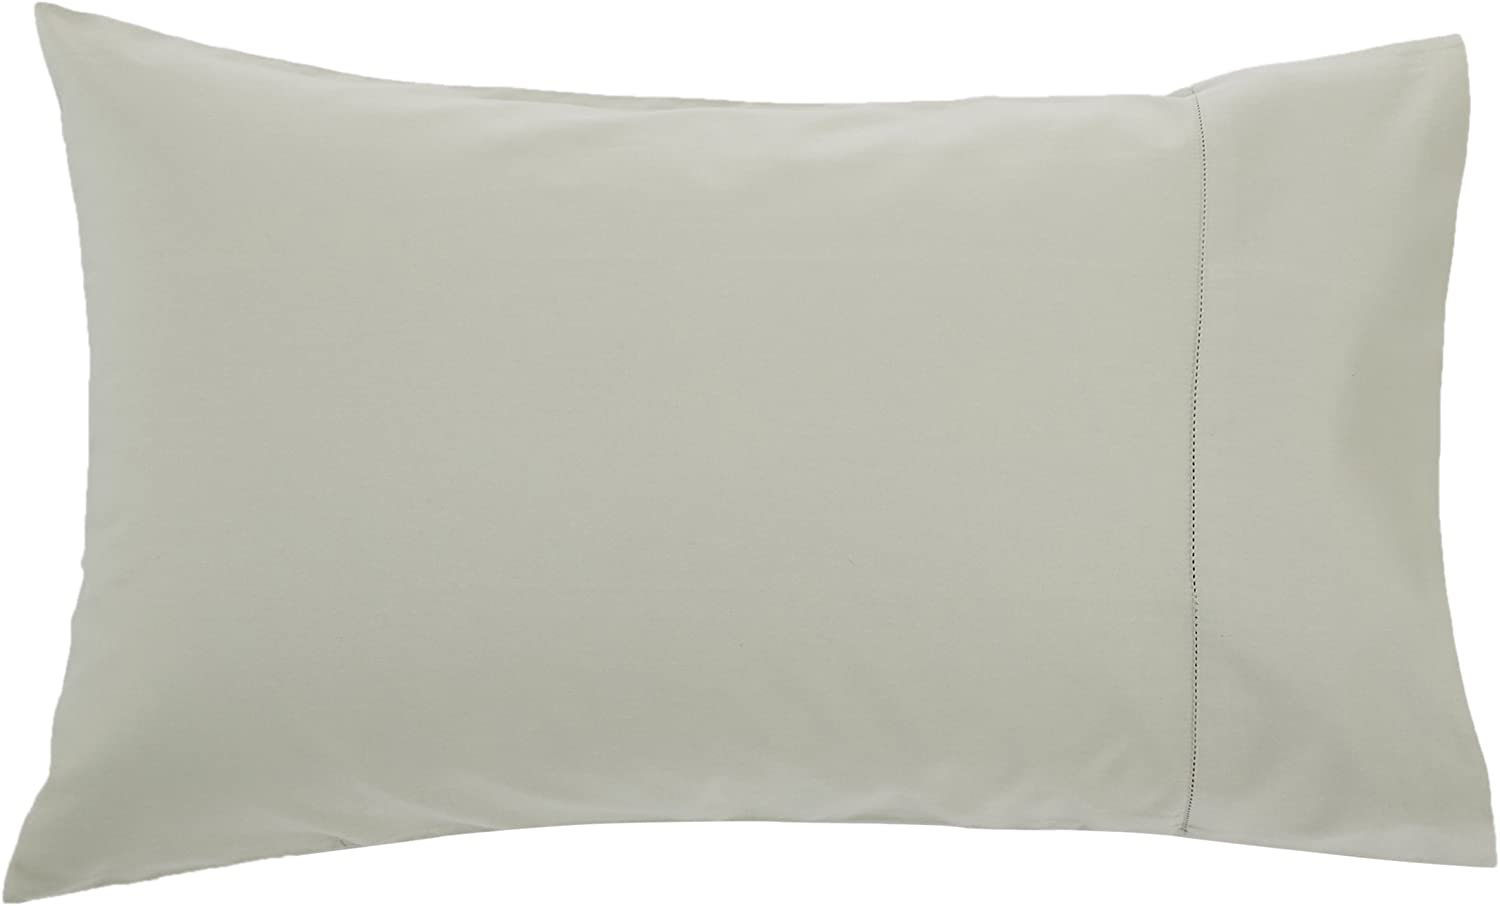 King Sage Set of 2 Pinzon 400 Thread Count Egyptian Cotton Sateen Hemstitch Pillow Cases